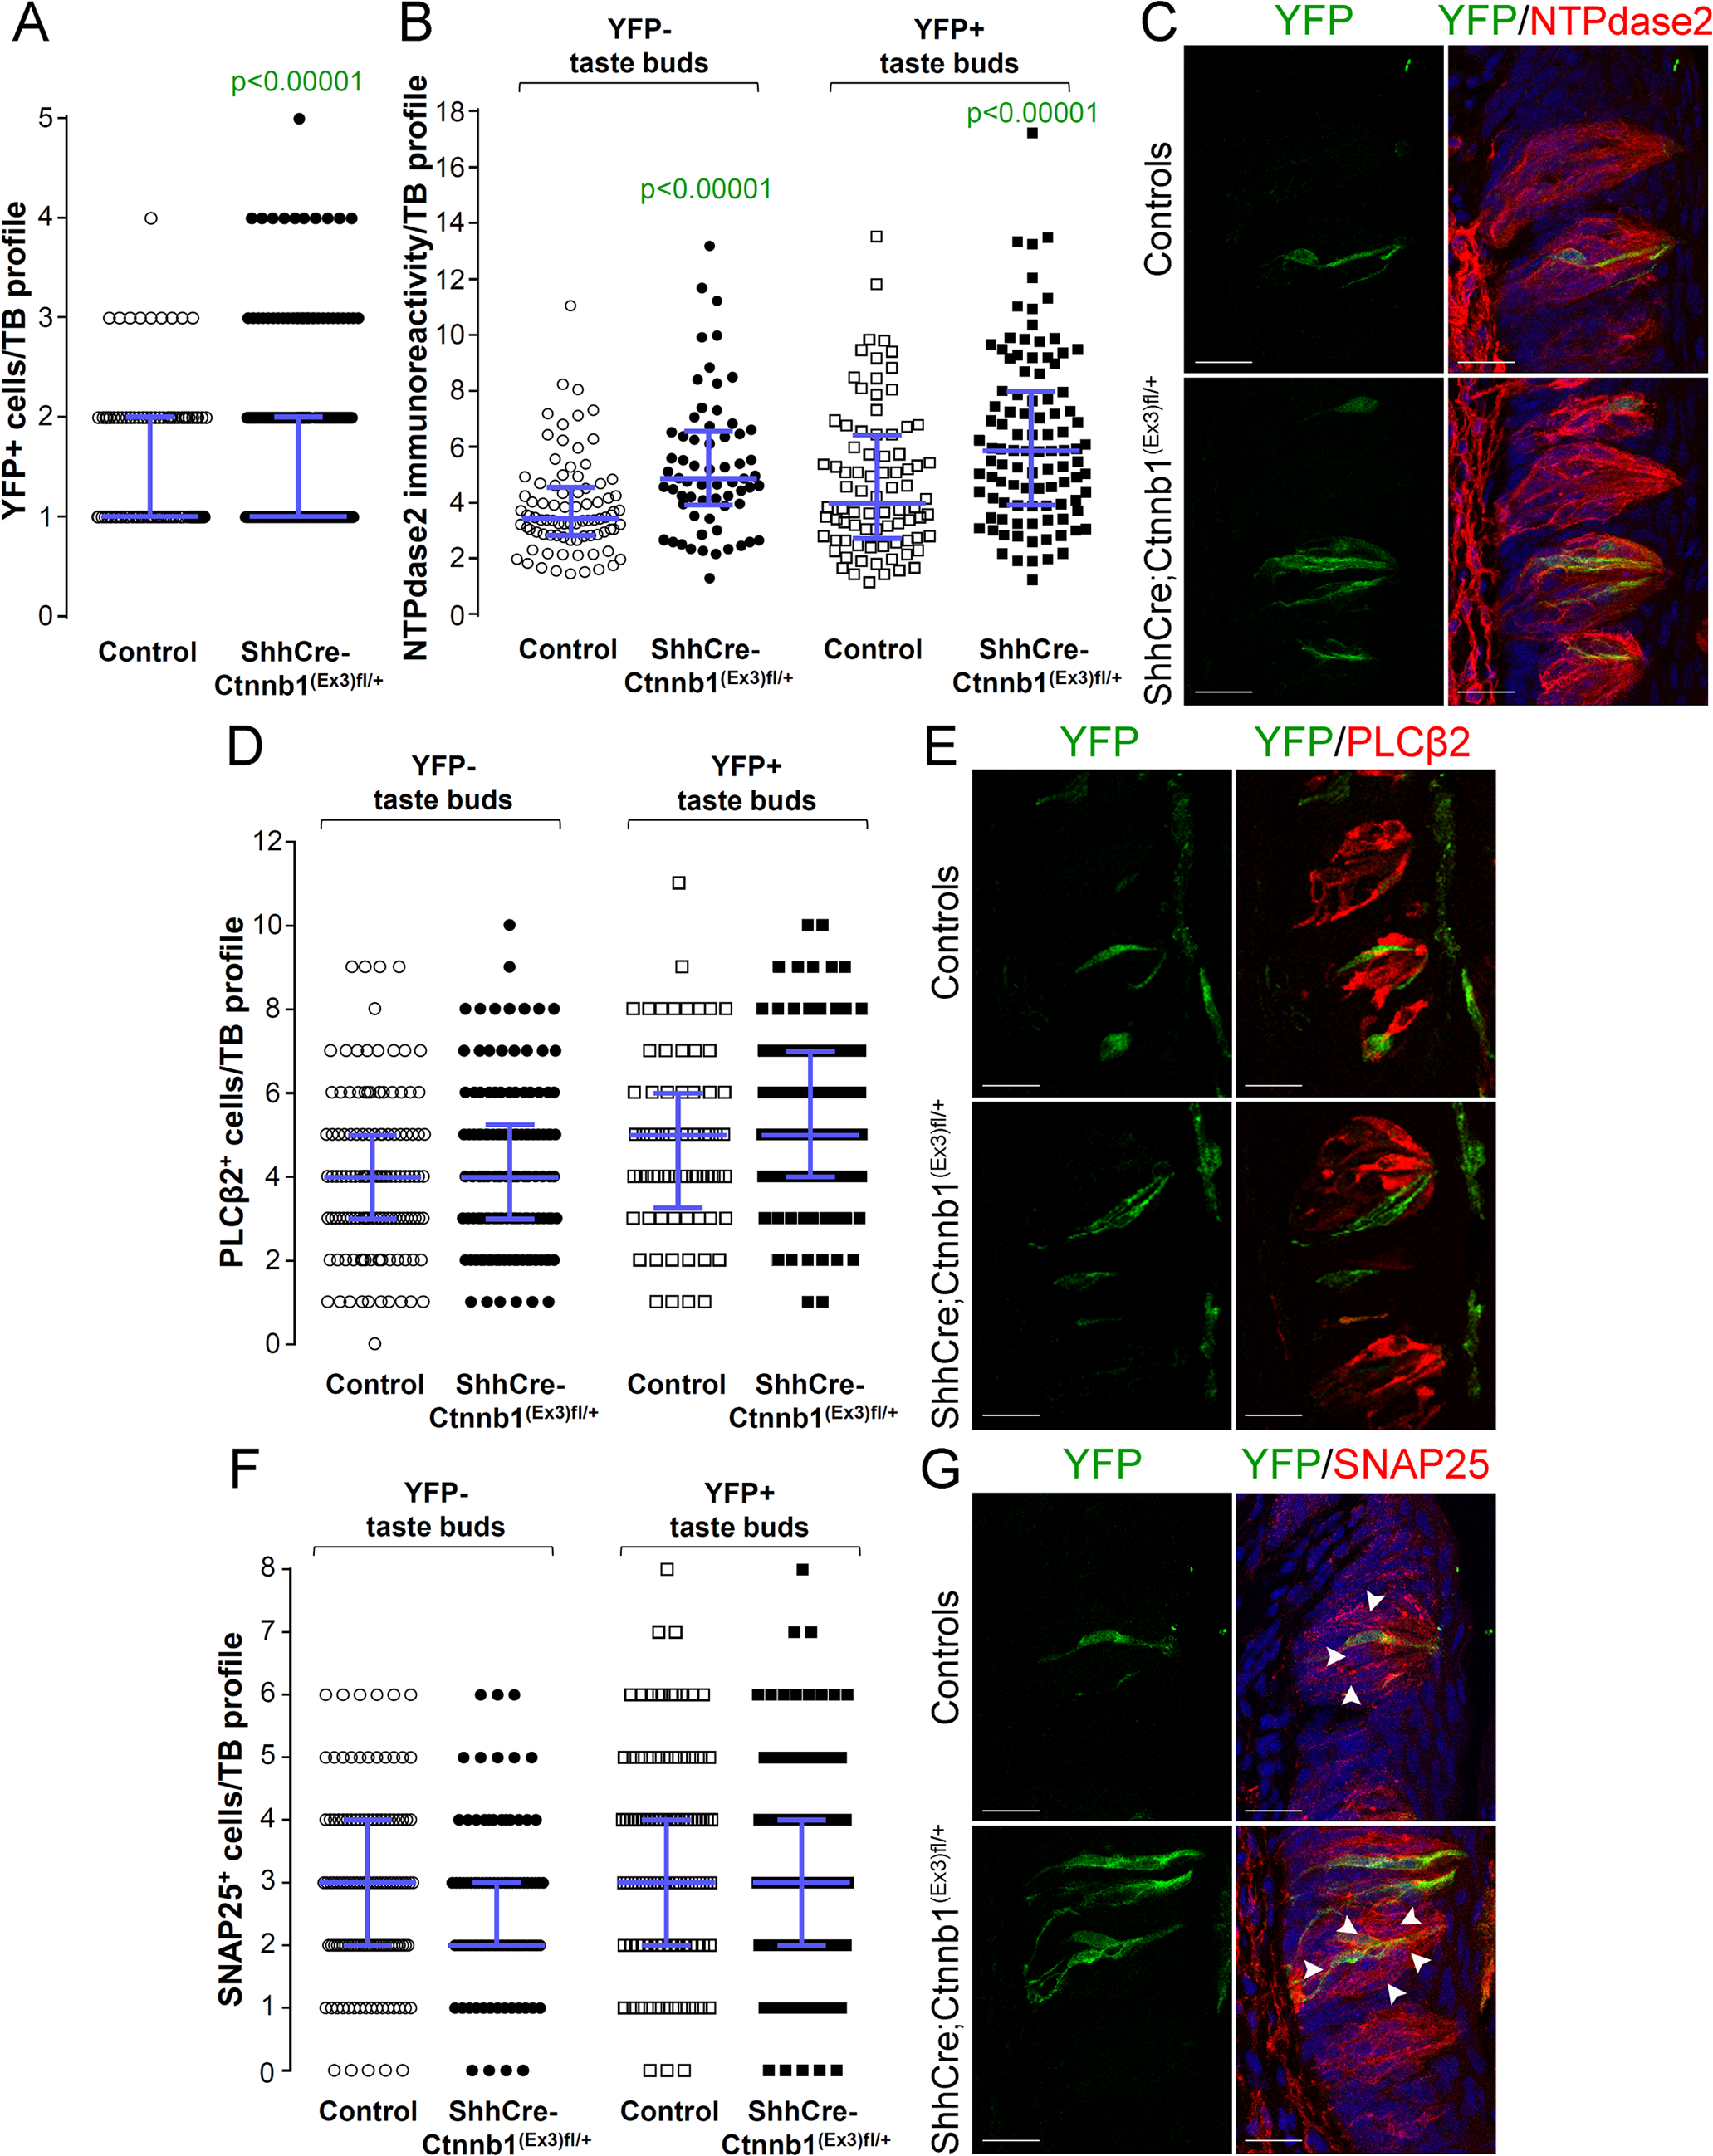 Beta-catenin stabilization in Shh<sup>+</sup> cells biases taste cell fate in the CVP, both taste bud autonomously and indirectly.